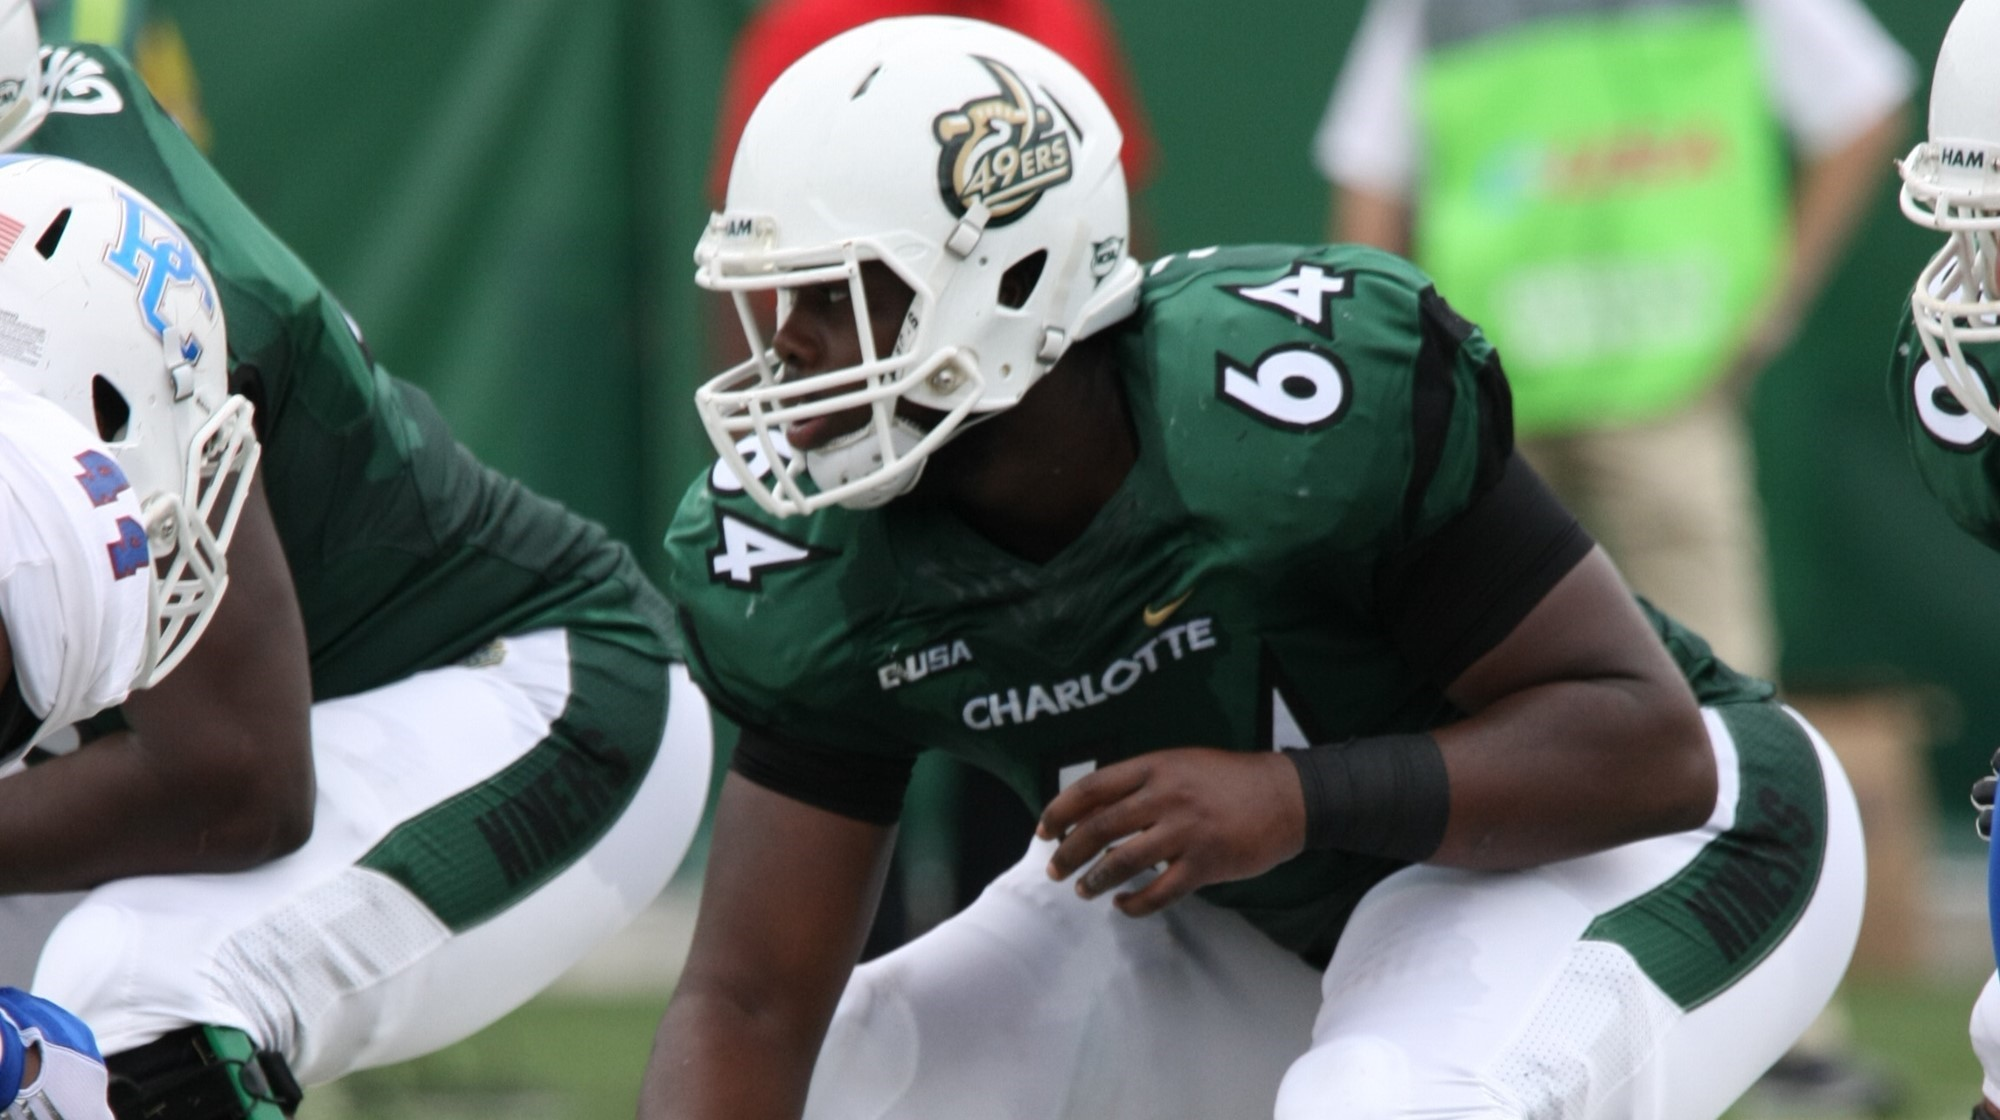 Interview with Charlotte OG Nate Davis